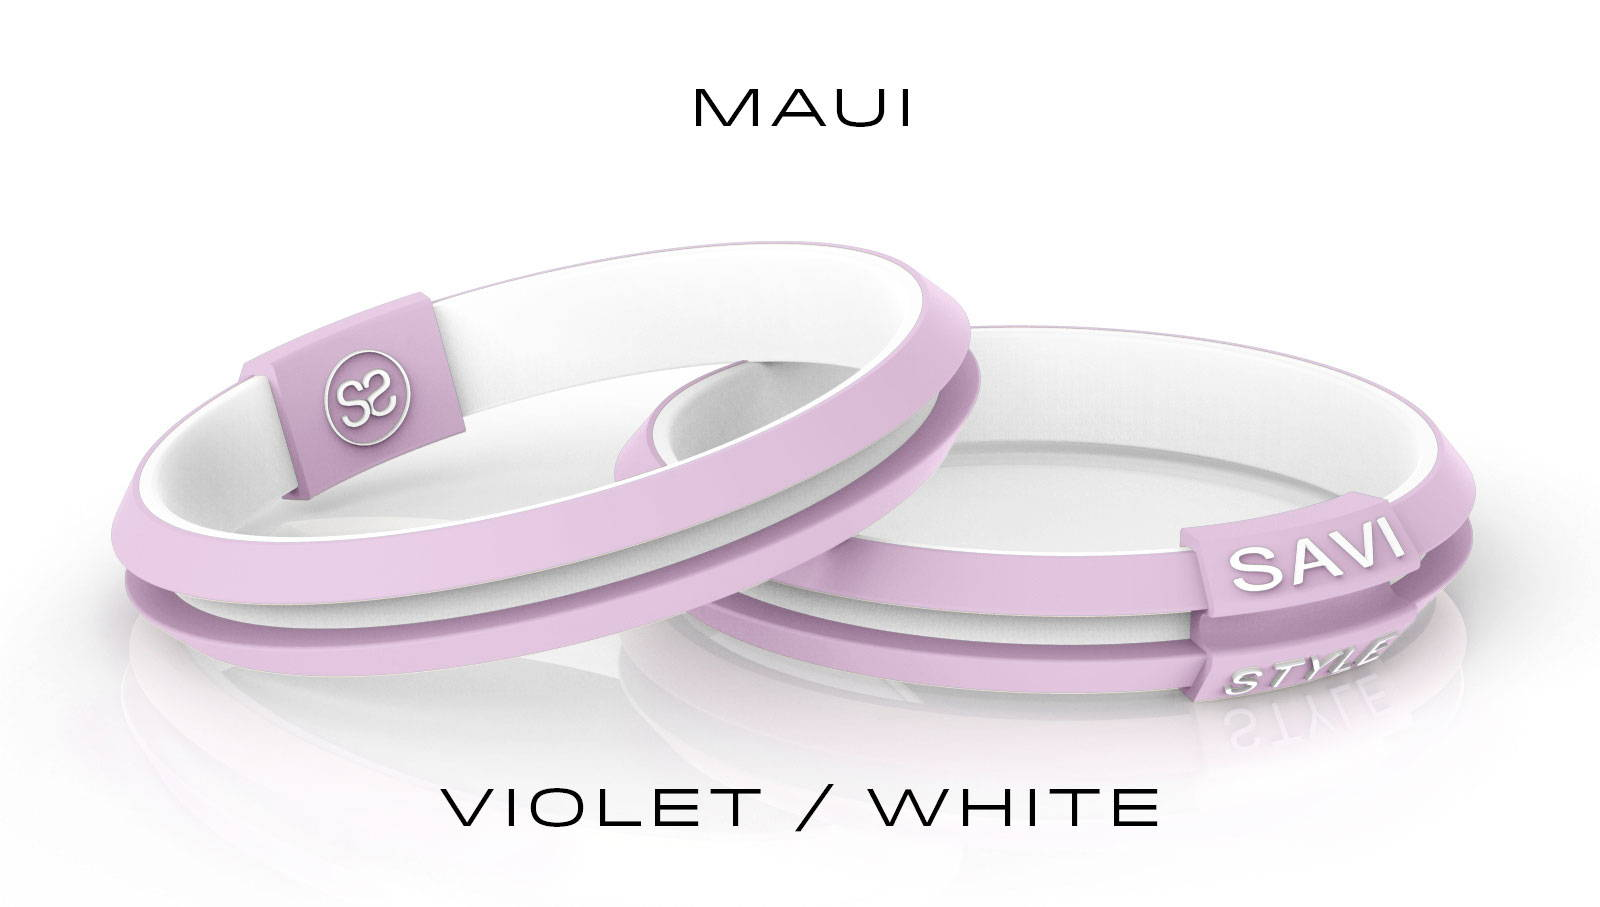 savi sleek maui by savistyle hair tie bracelet stacked view